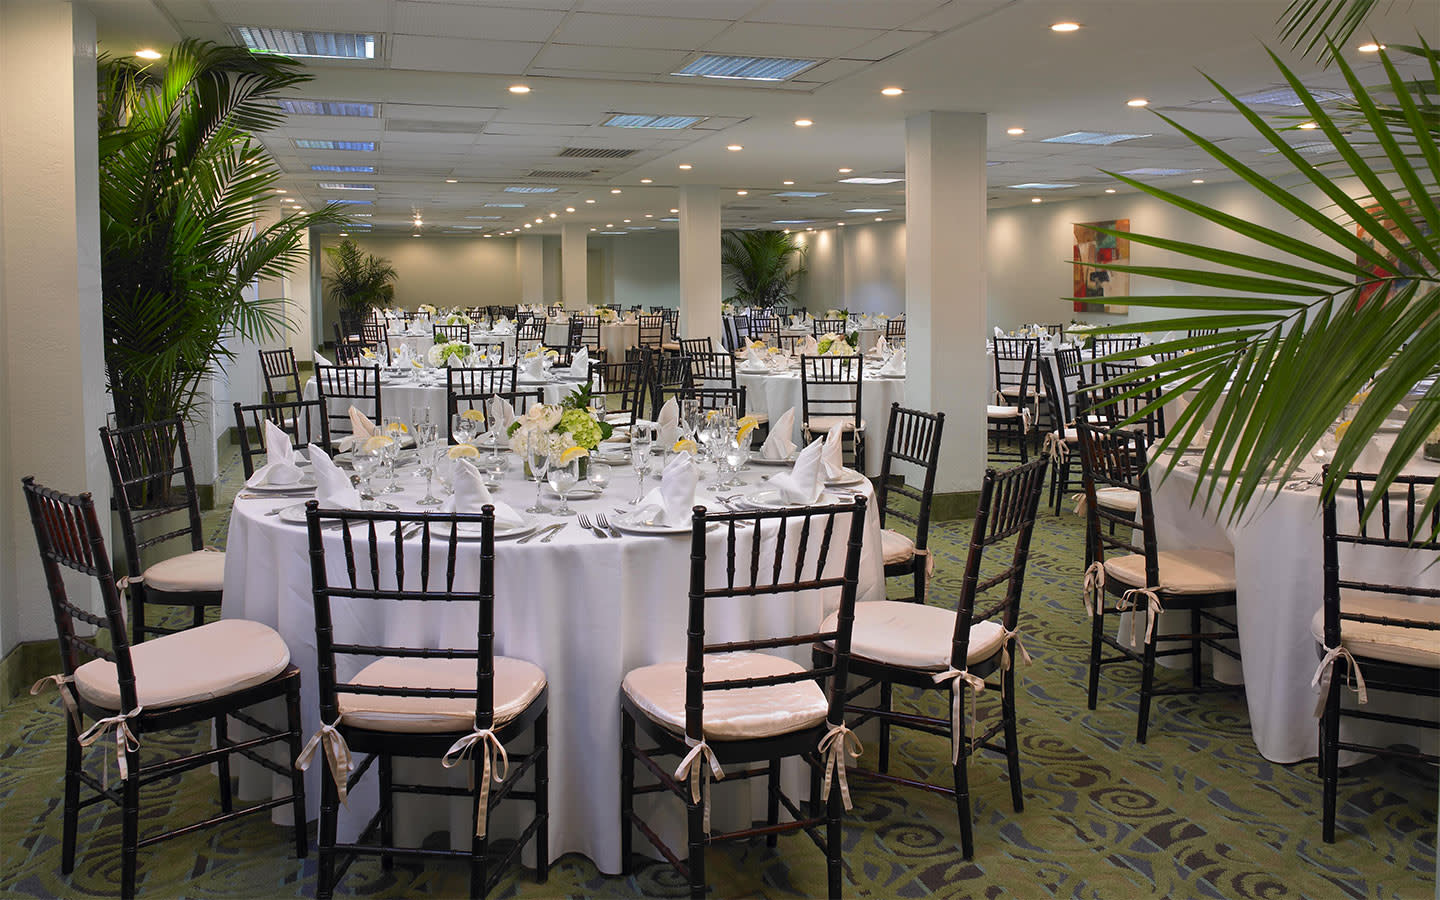 1 of 3 Indoor Event Spaces